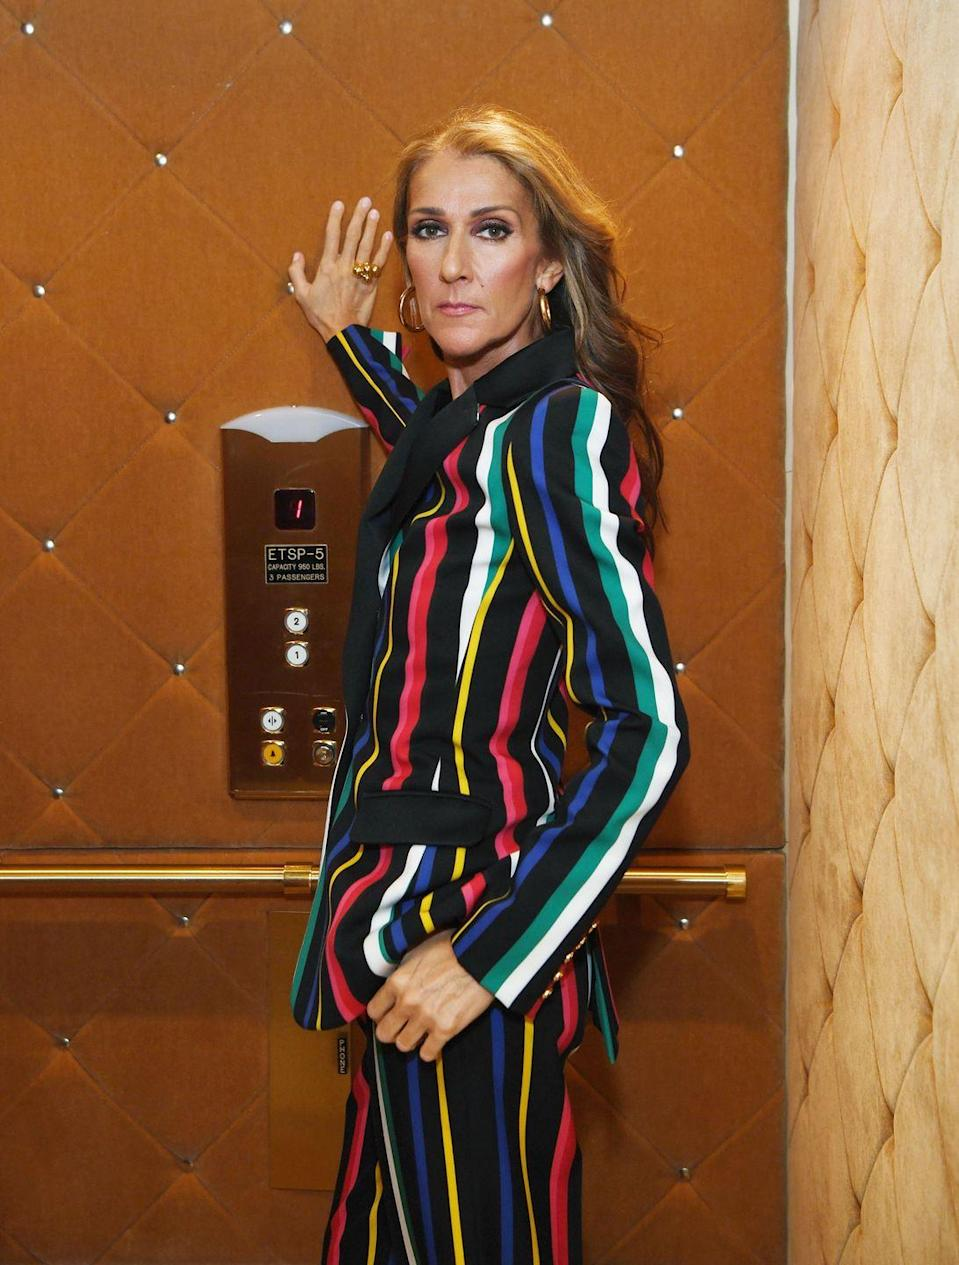 <p>A power suit lends itself to a power pose. Dion celebrated being named L'Oreal's global spokeswoman with this multicolored suit, the perfect balance of whimsy and business. </p>